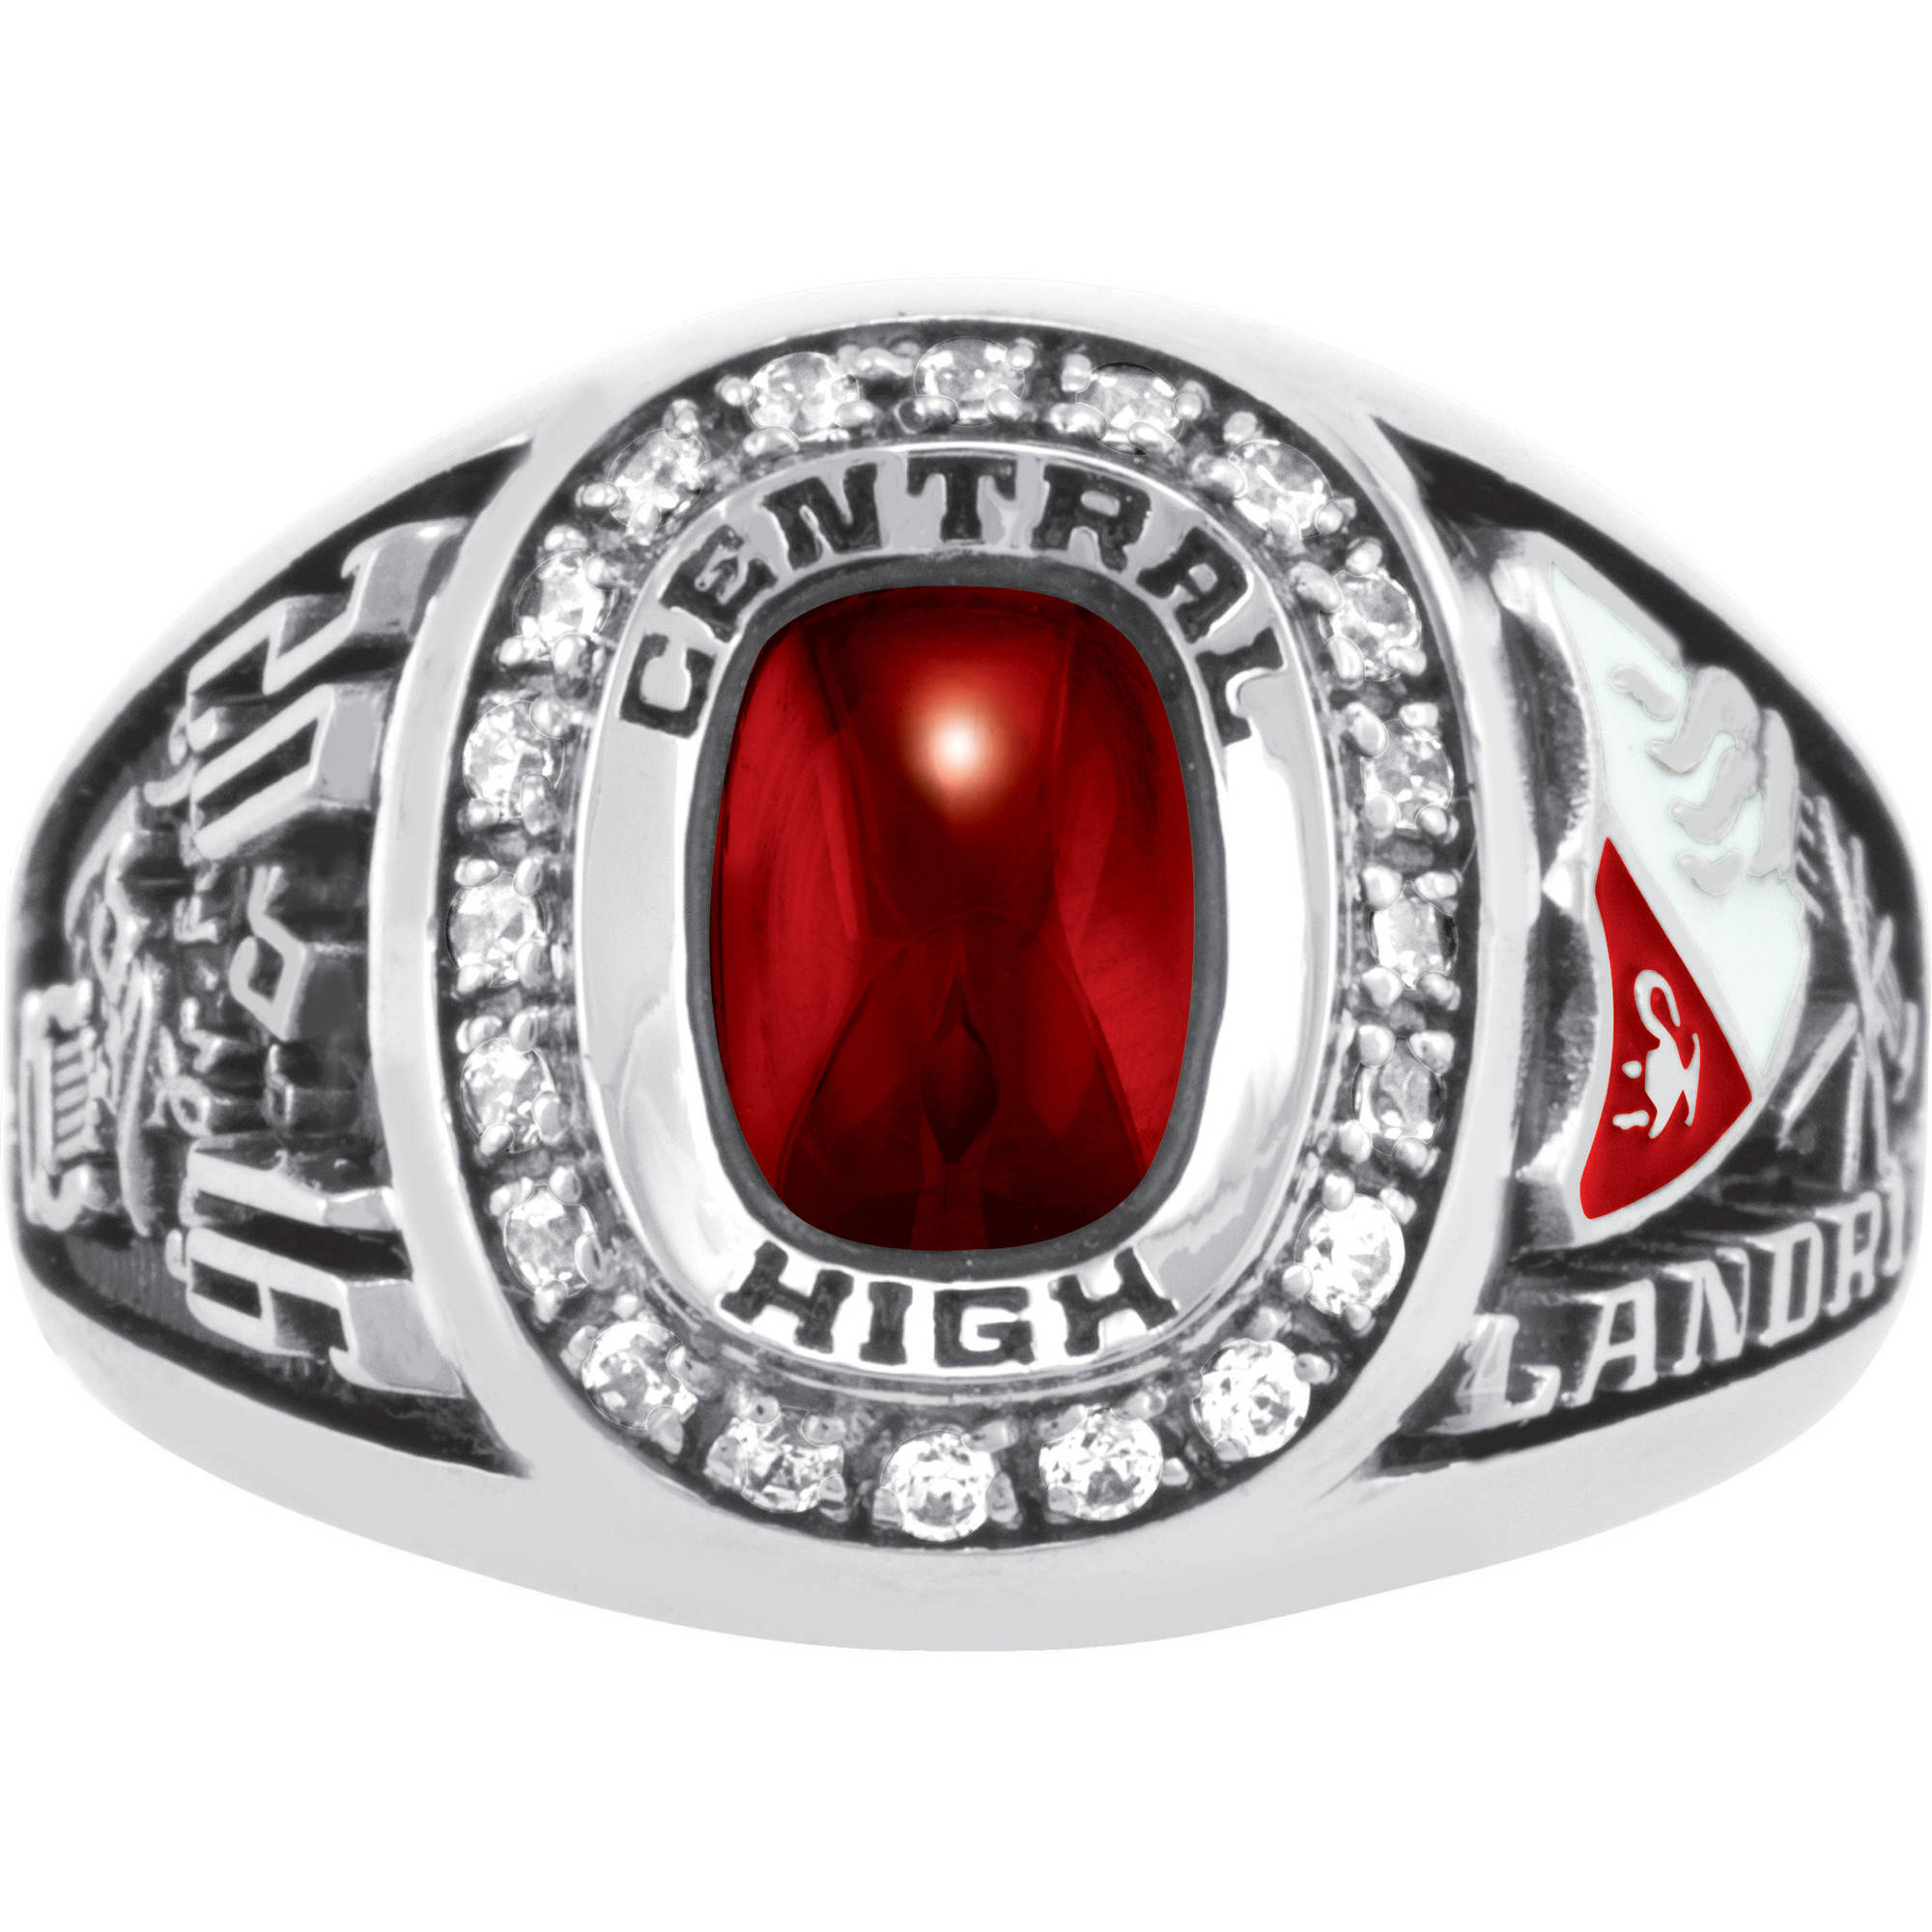 Keepsake Girls' USA Premiere Class Ring